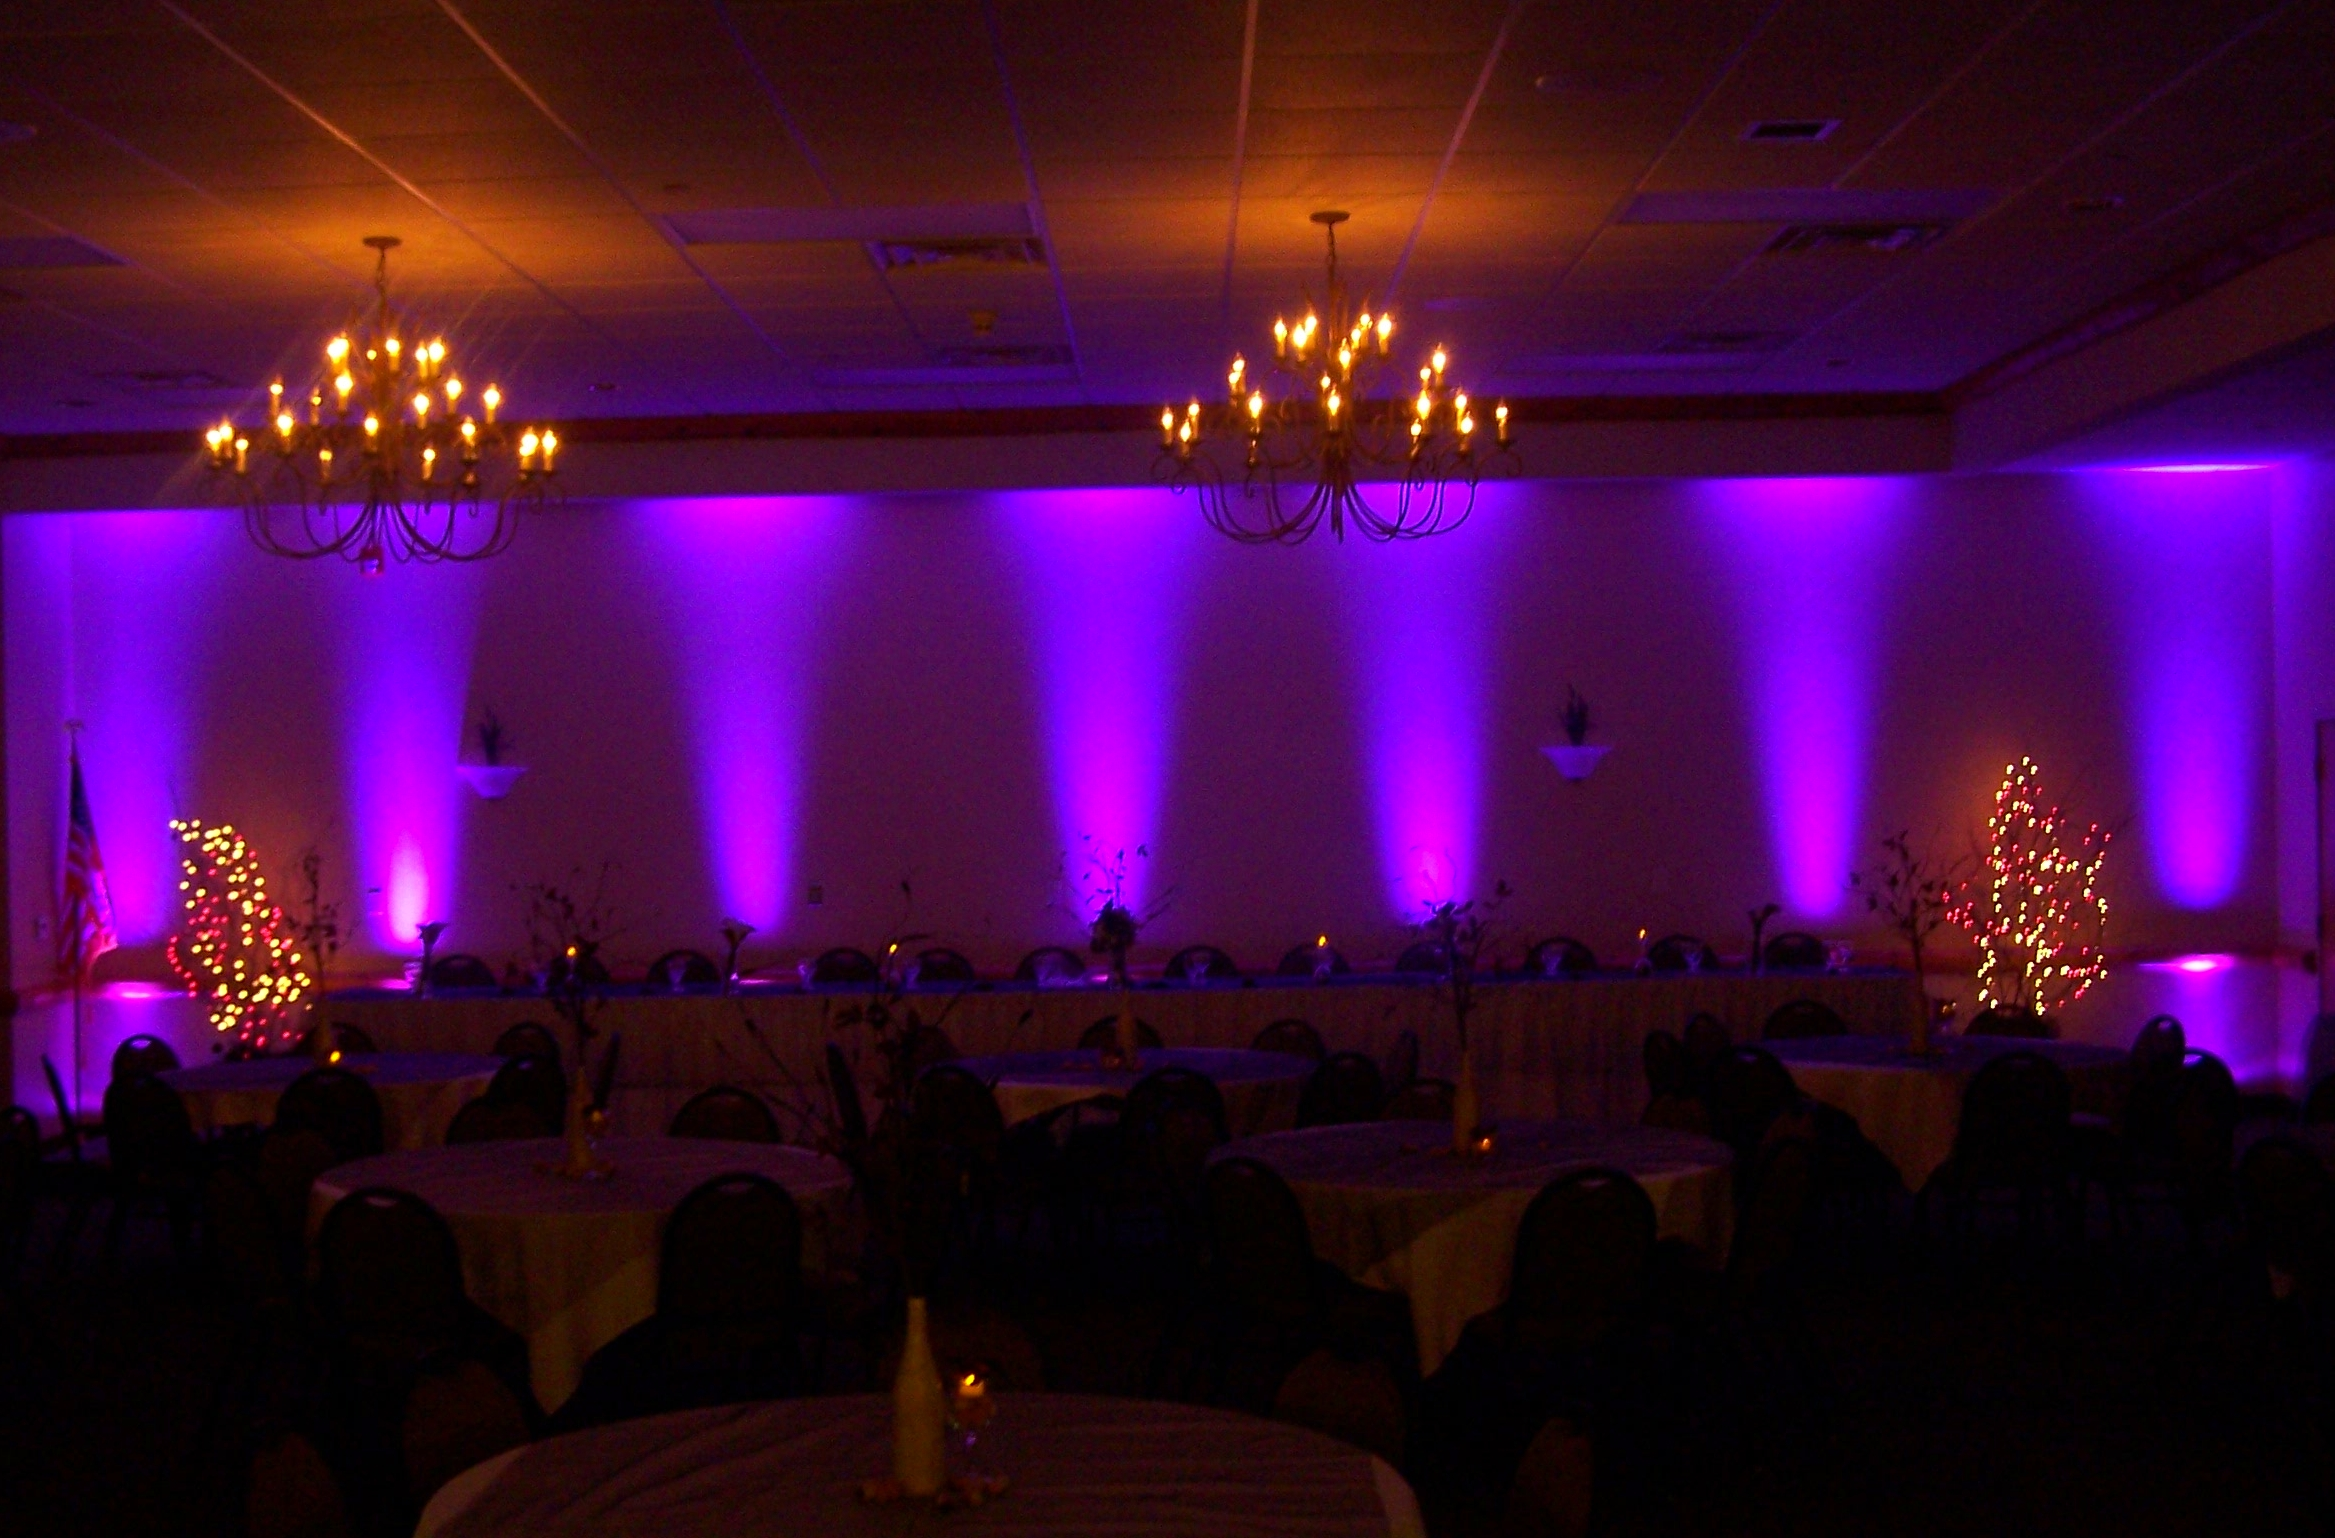 Wedding Uplighting for your head table and ballroom & Event Lighting Packages Albany NY | Event Lighting Packages Saratoga ...